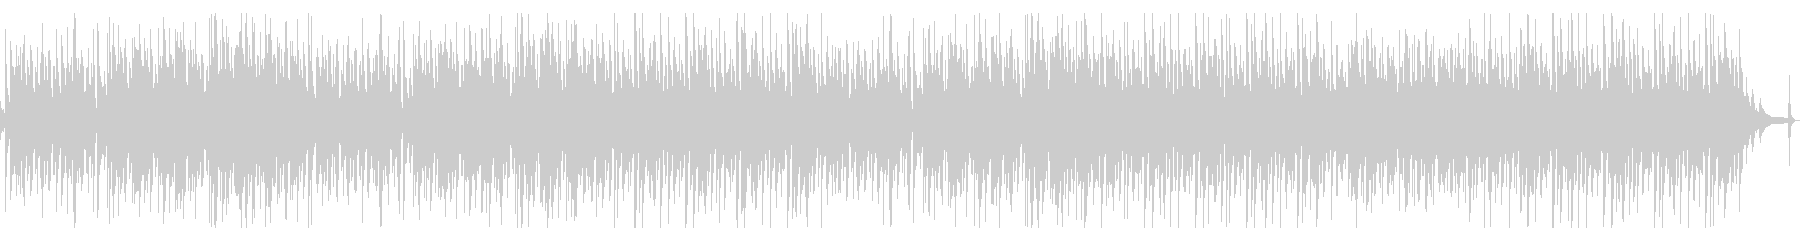 Fashionable Bossa Nova Relax Cafe's unreproduced waveform